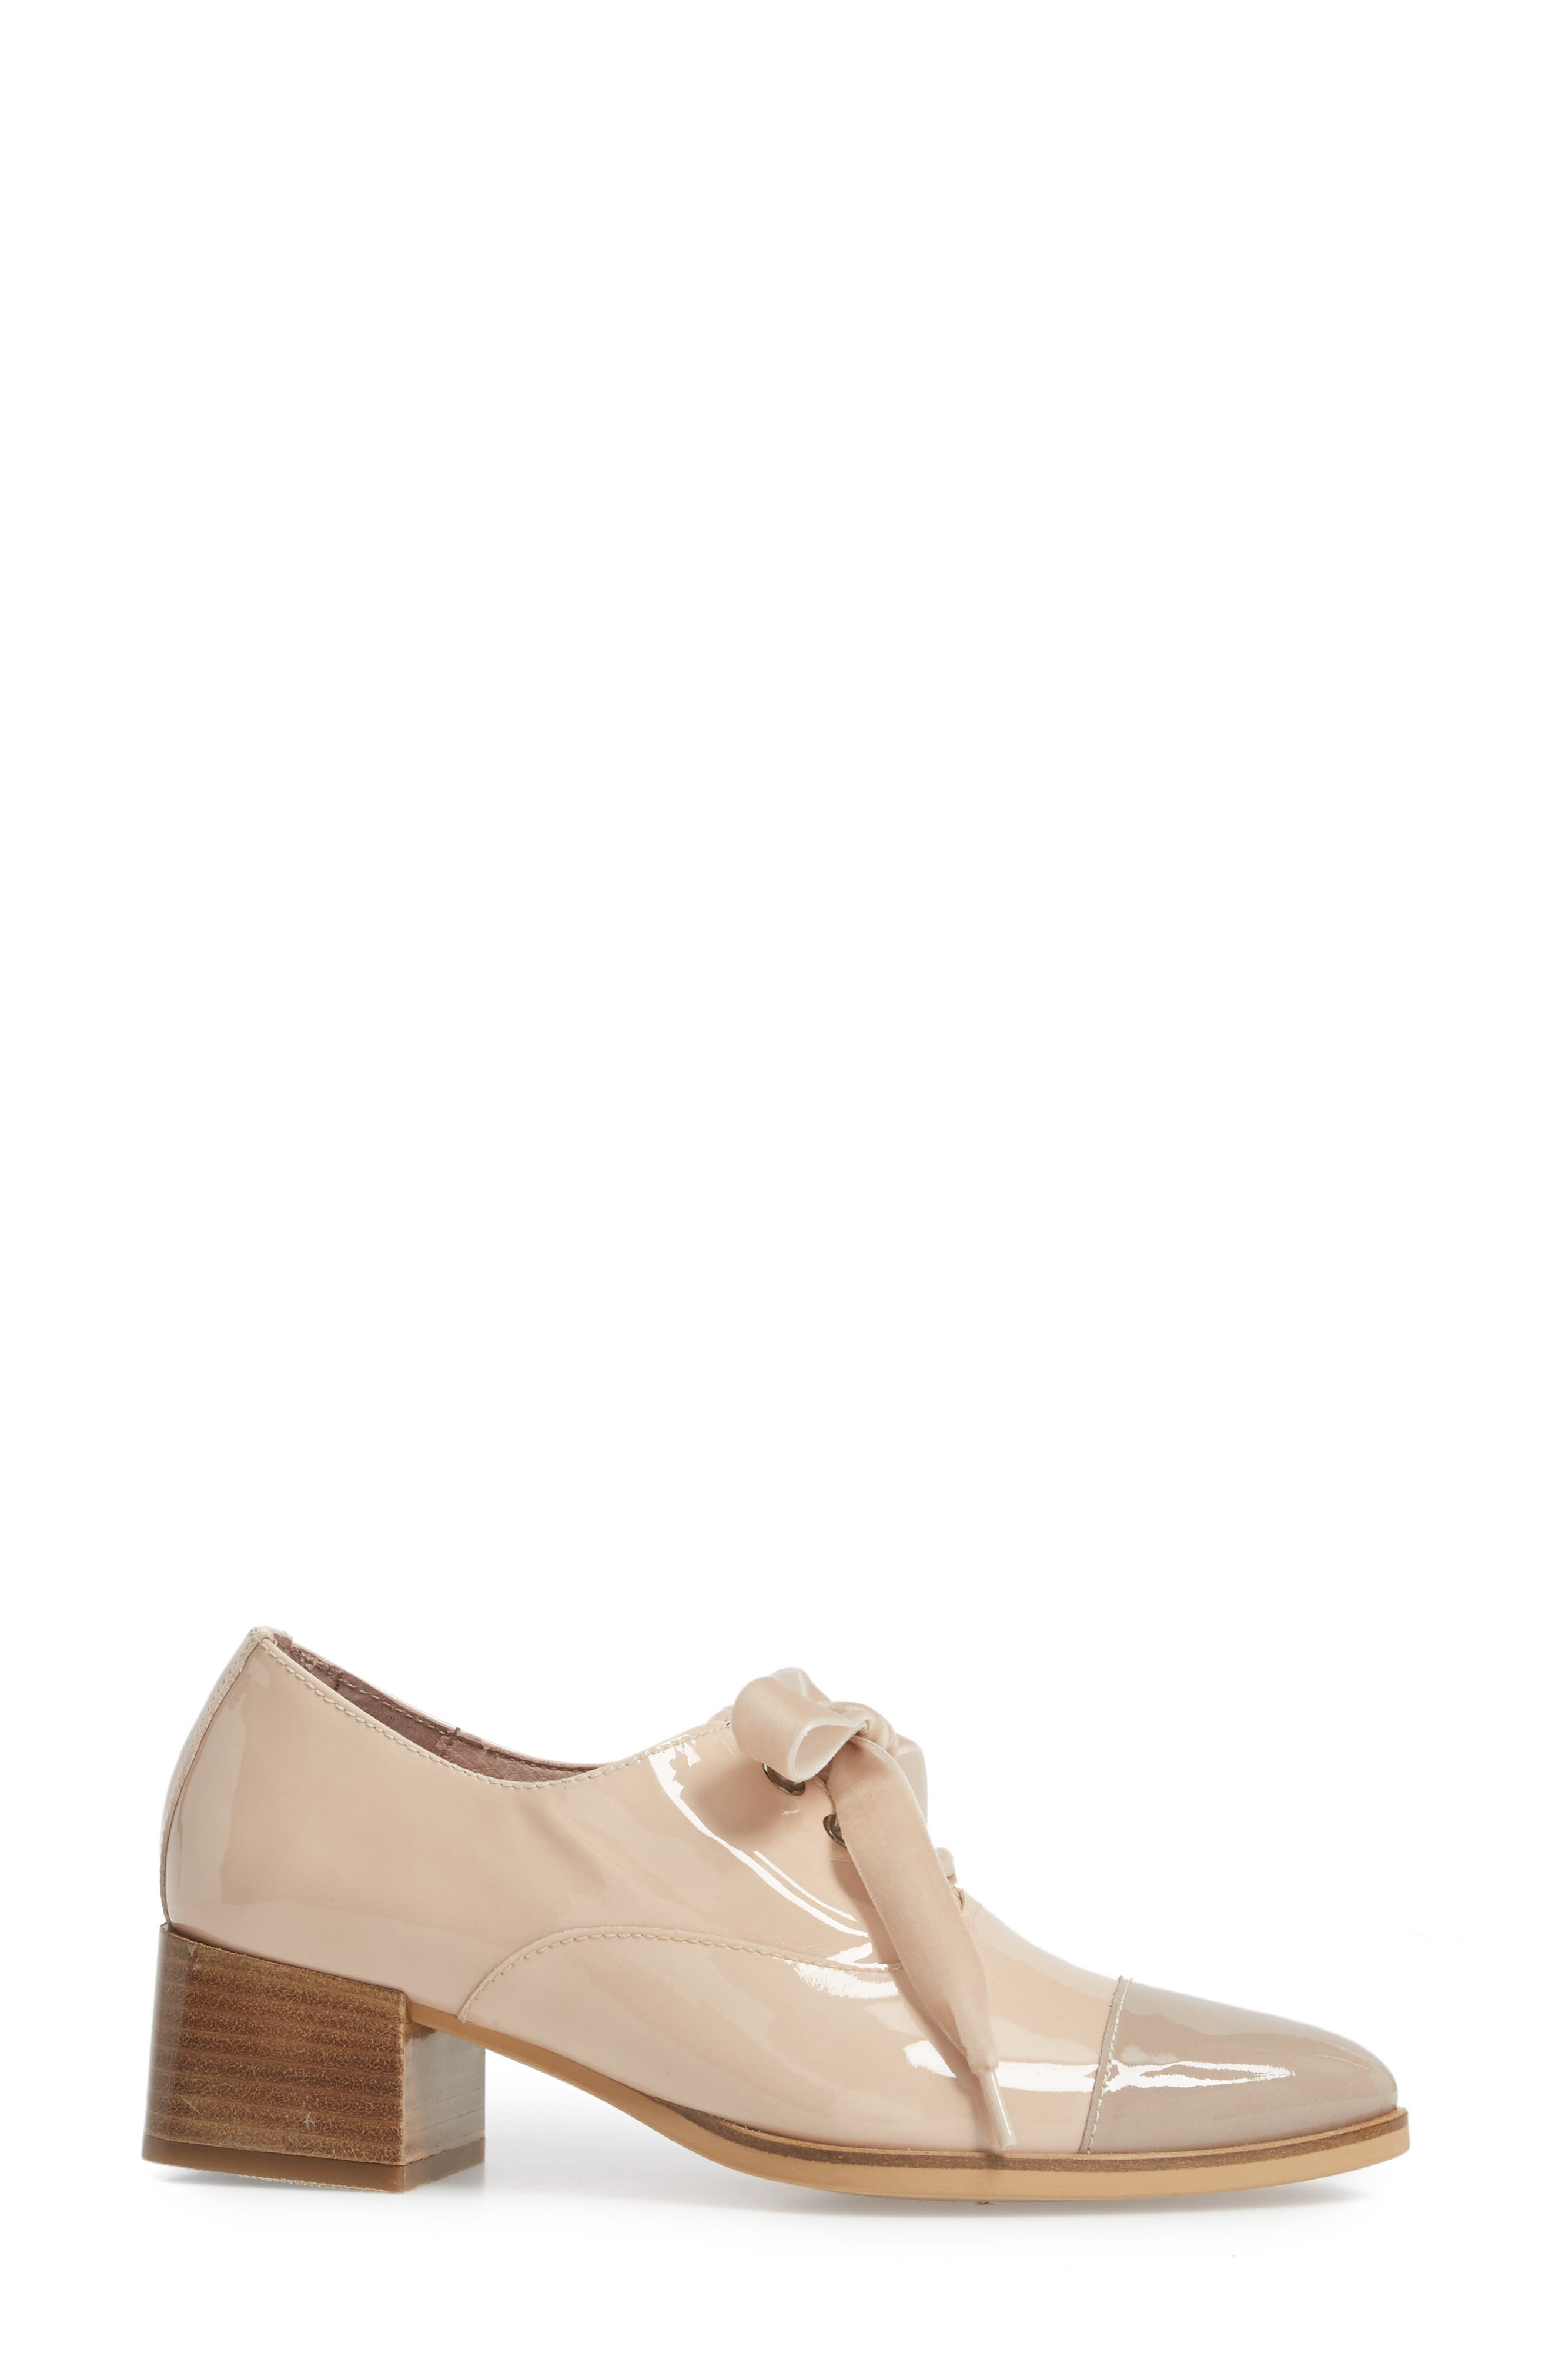 Lace-Up Oxford Pump,                             Alternate thumbnail 3, color,                             TAUPE/ PALO PATENT LEATHER